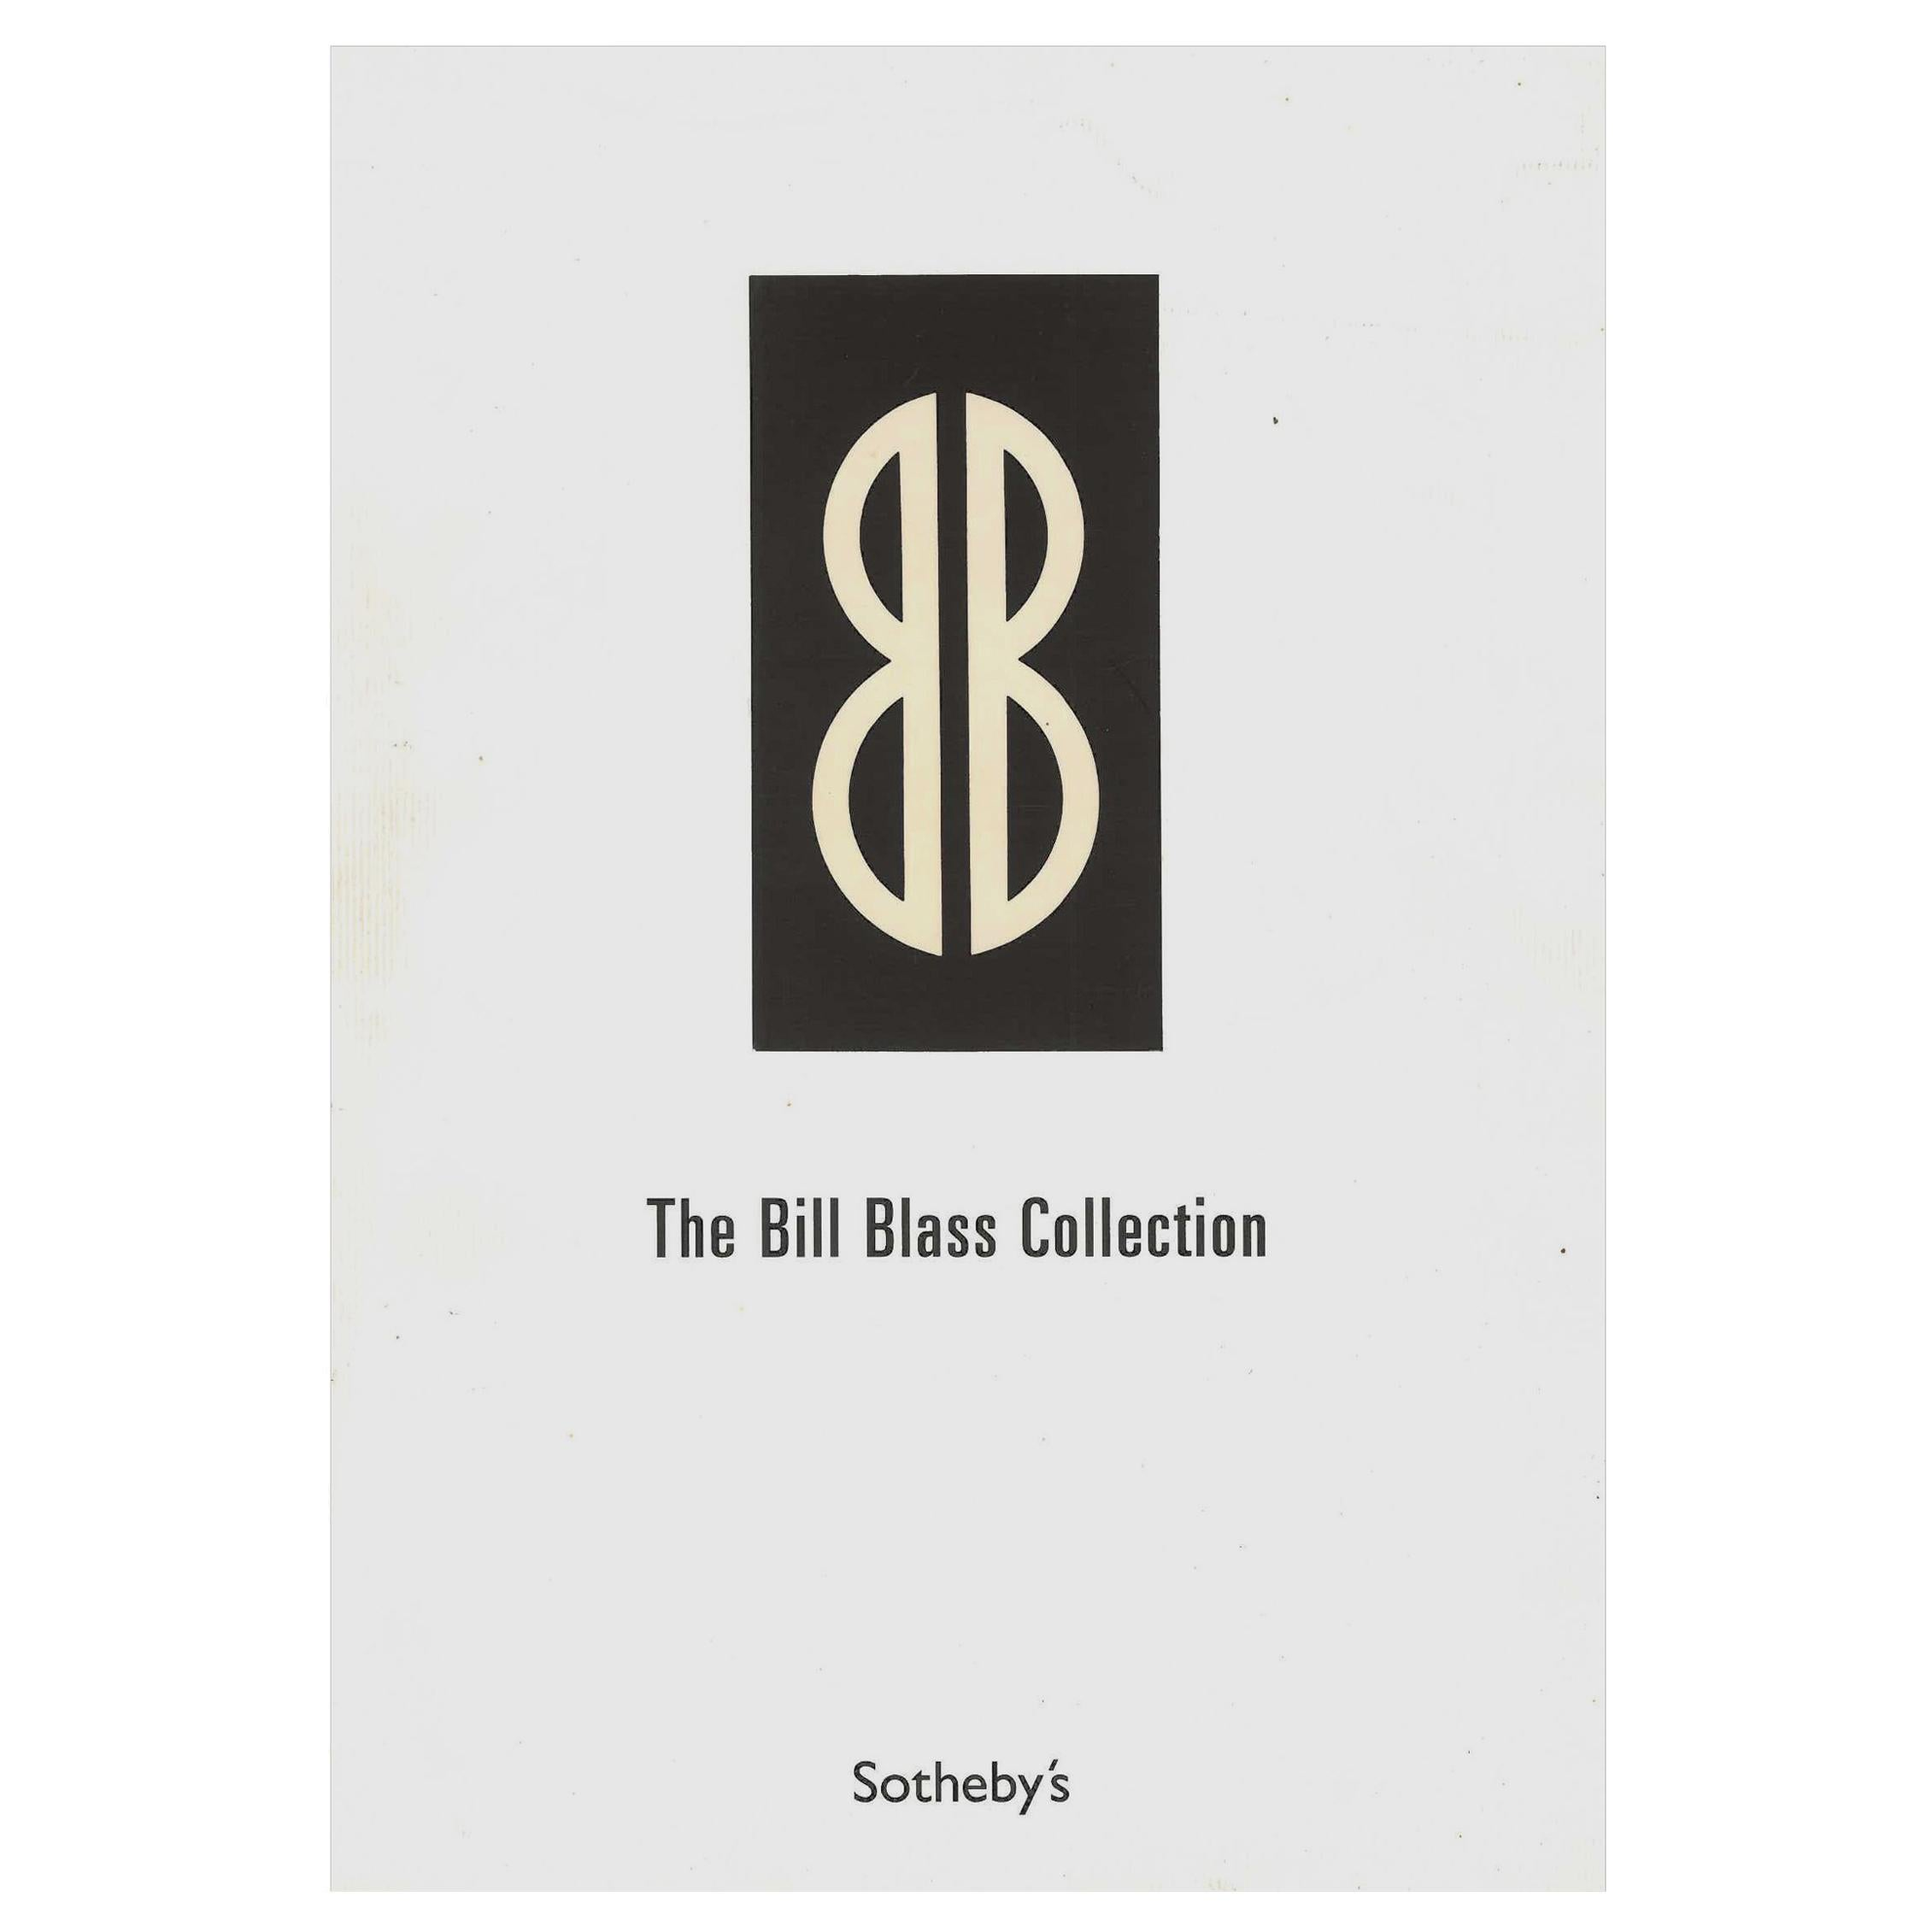 The Bill Blass Collection, 2003 Sotheby's Sale Catalogue